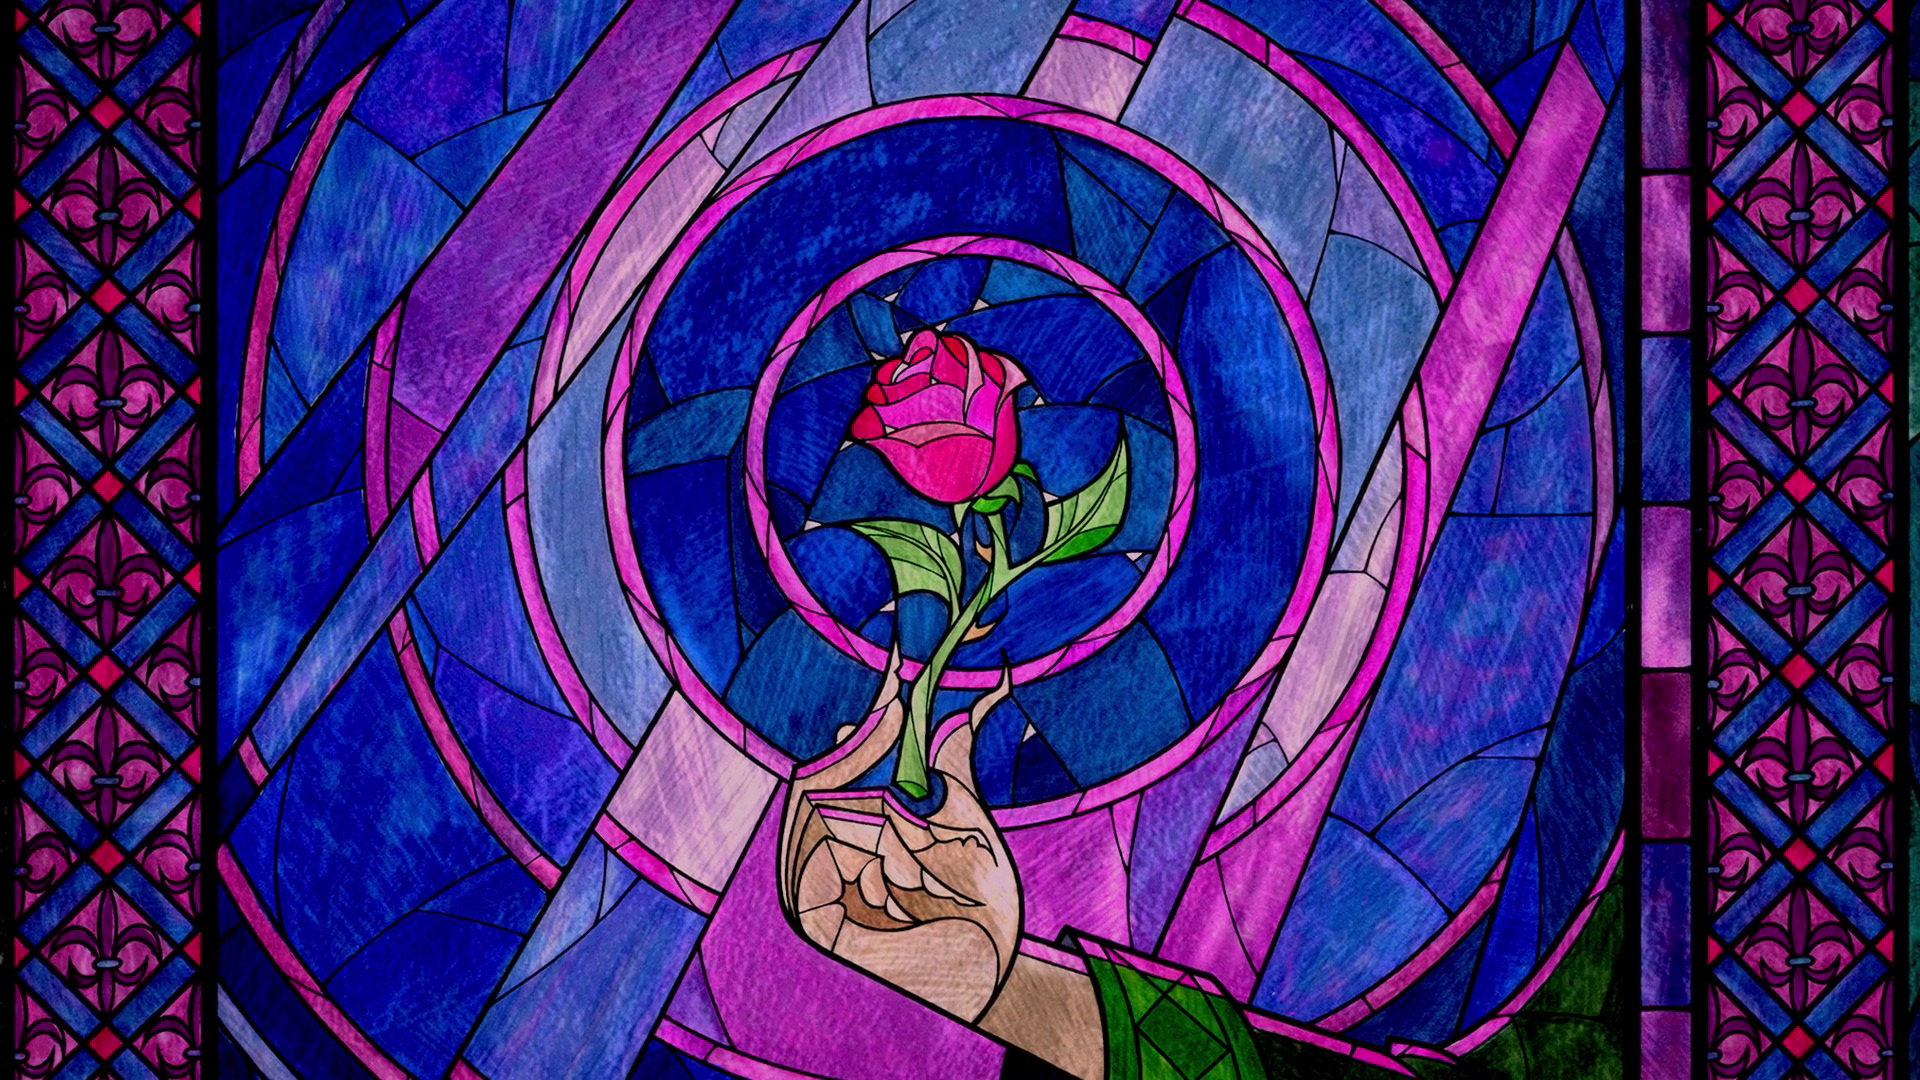 Beauty And The Beast Rose Wallpaper: Image - Enchanted Rose Stained Glass.jpg